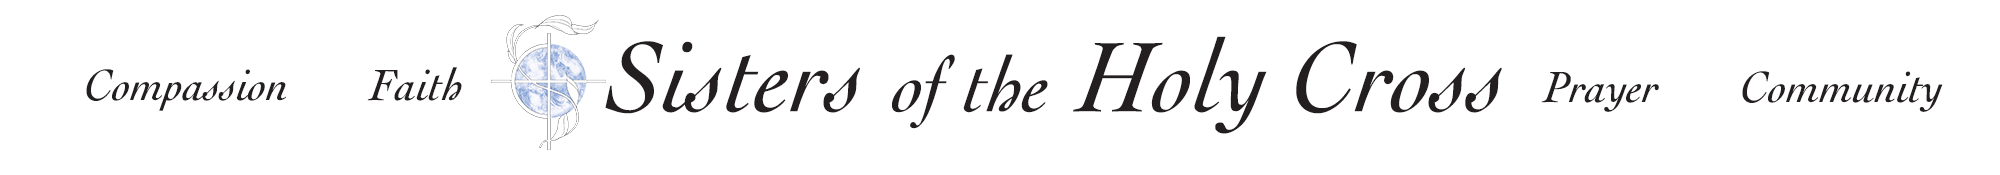 Sisters of the Holy Cross logo and common values